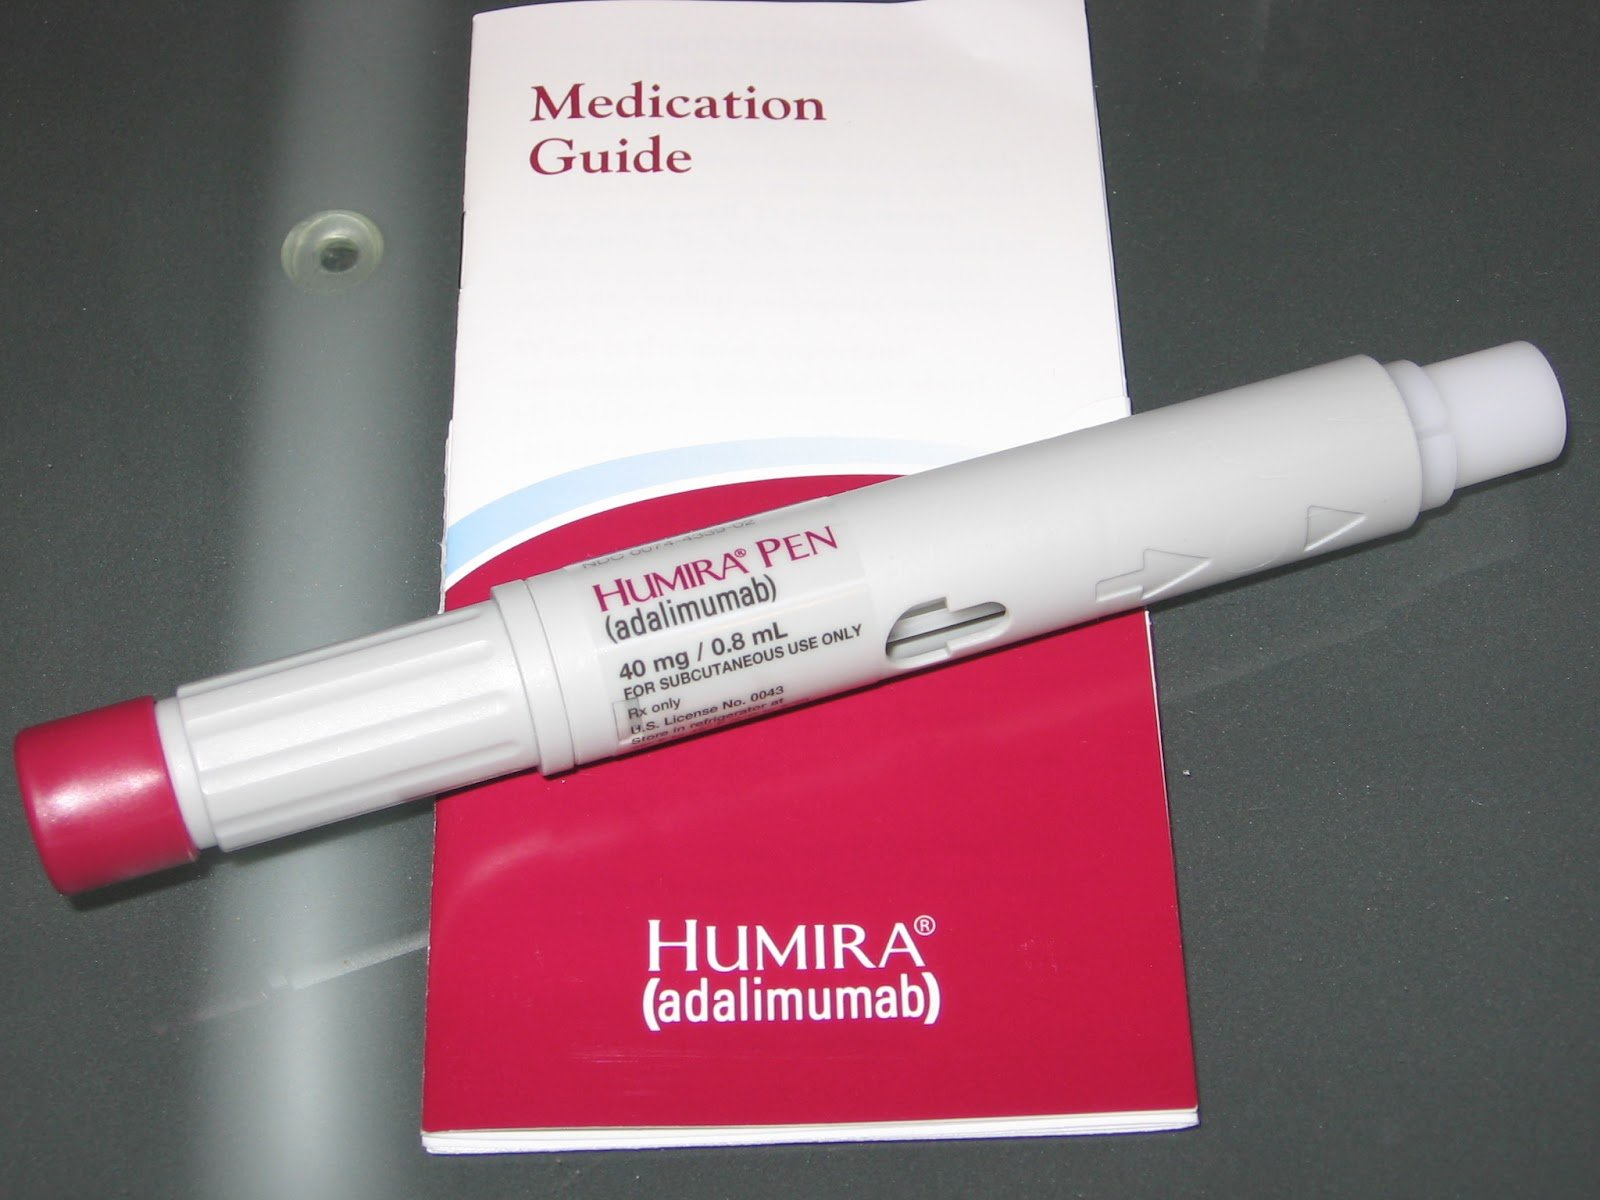 Humira (adalimumab) - Medications for Rheumatoid Arthritis